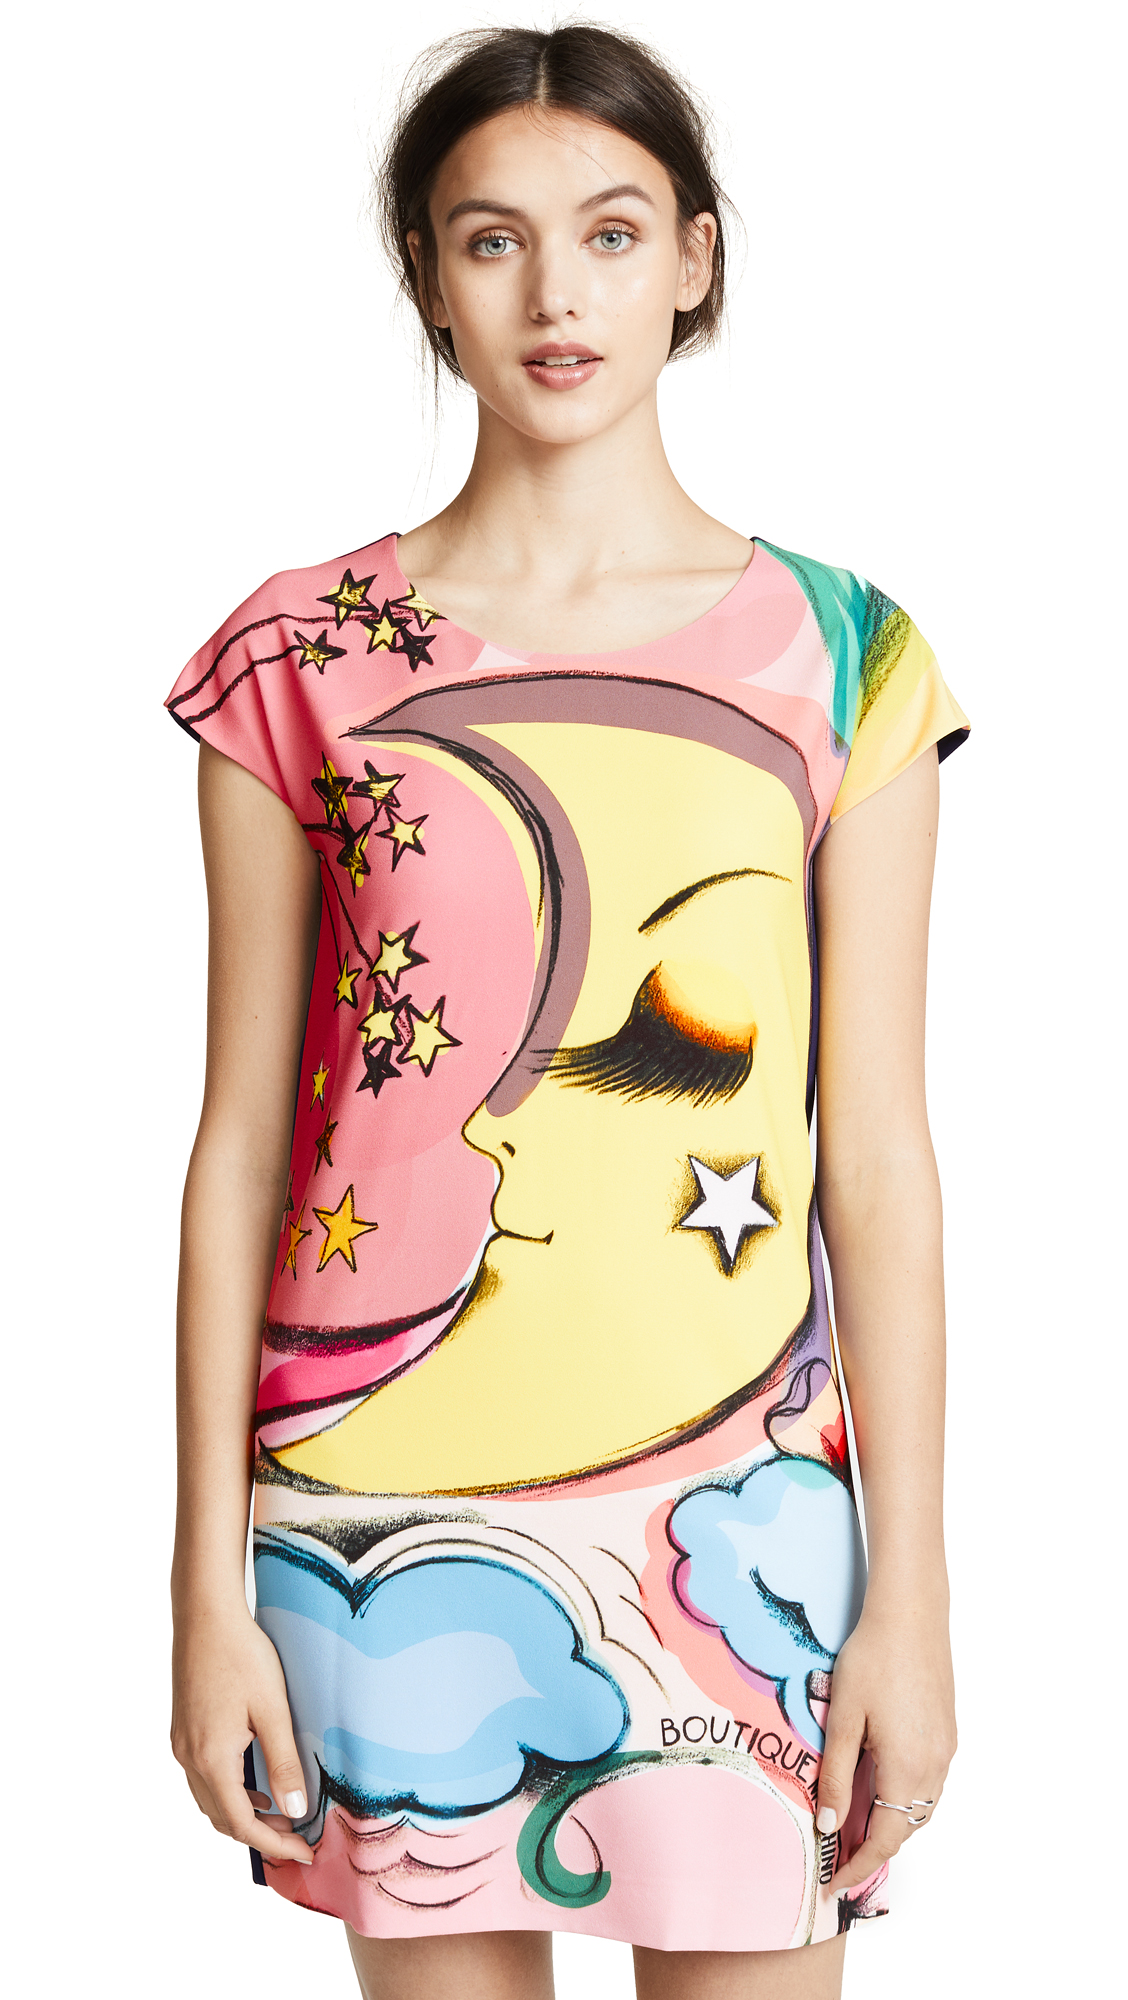 Boutique Moschino Moon Shirt Dress